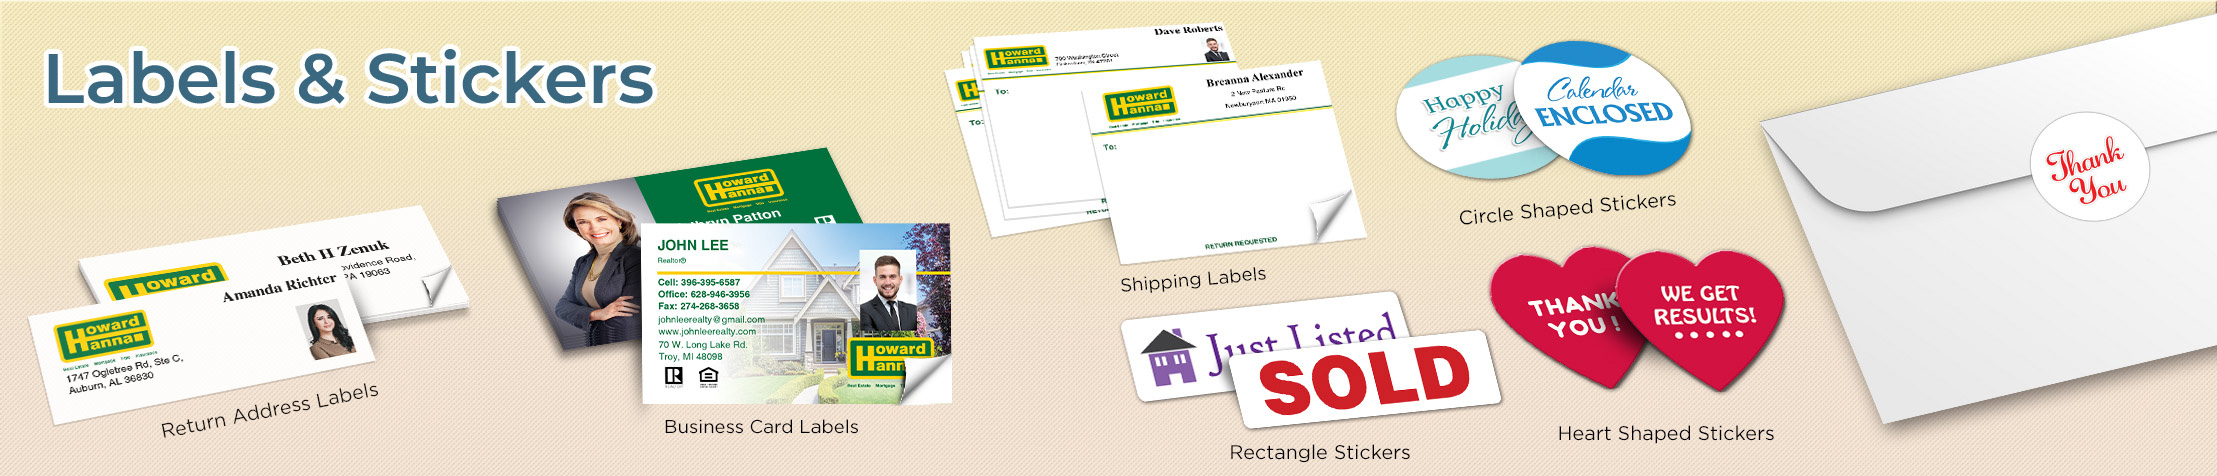 Howard Hanna Real Estate Labels and Stickers - Howard Hanna  business card labels, return address labels, shipping labels, and assorted stickers | BestPrintBuy.com